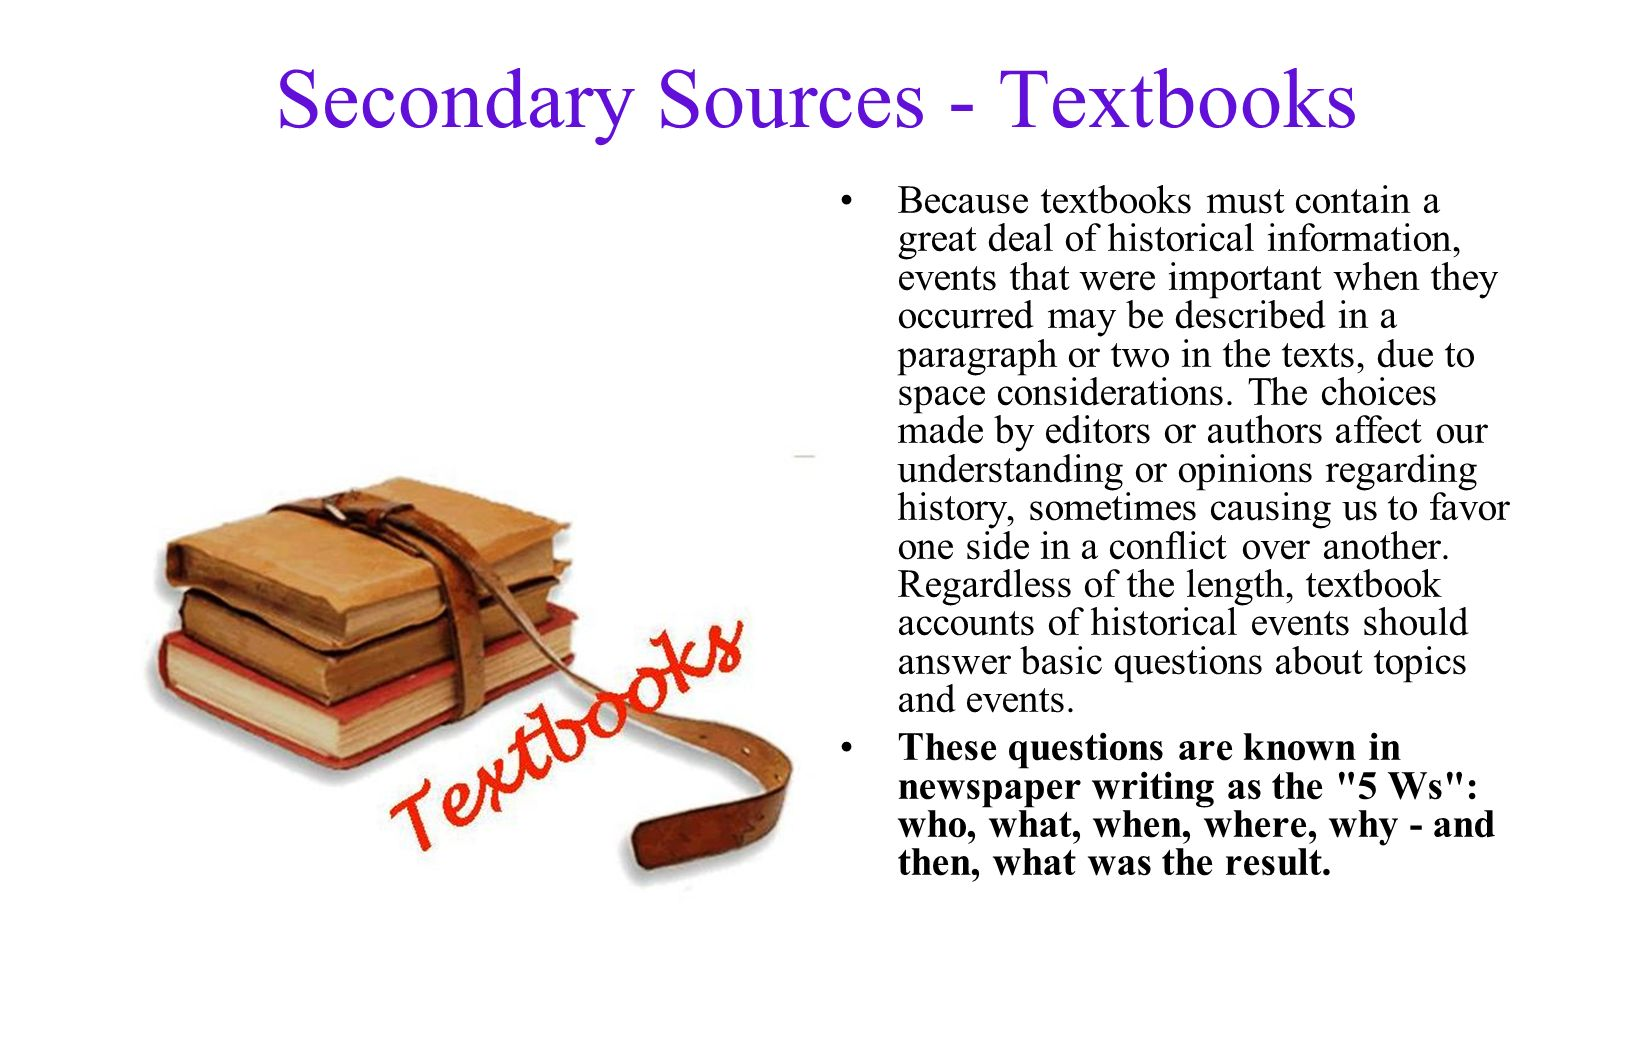 Secondary Sources - Textbooks Because textbooks must contain a great deal of historical information, events that were important when they occurred may be described in a paragraph or two in the texts, due to space considerations.